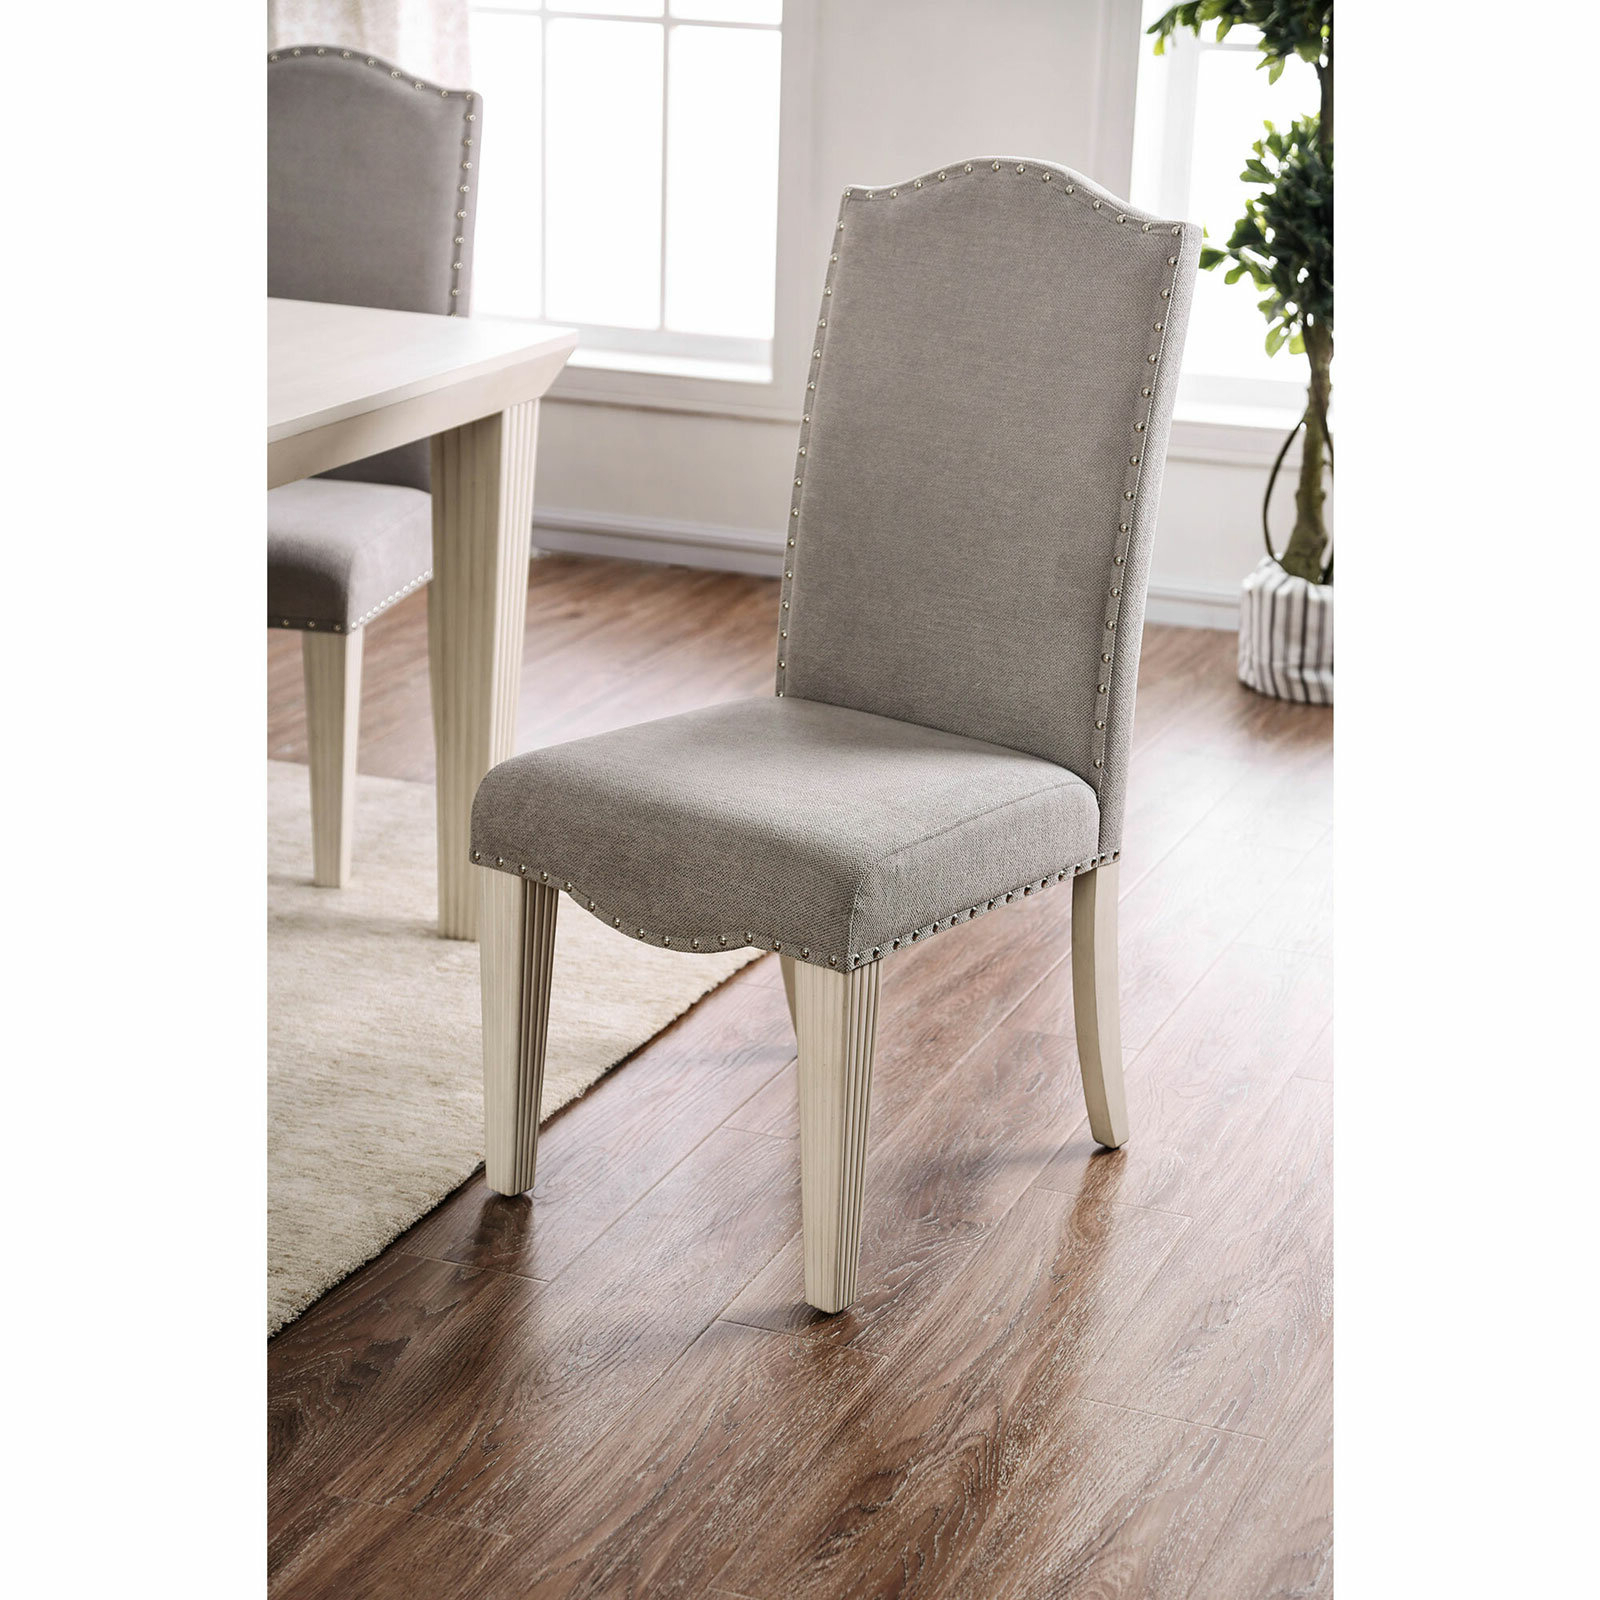 Famous Dunphy Upholstered Dining Chair In Gray/antique White With Bob Stripe Upholstered Dining Chairs (set Of 2) (View 16 of 20)